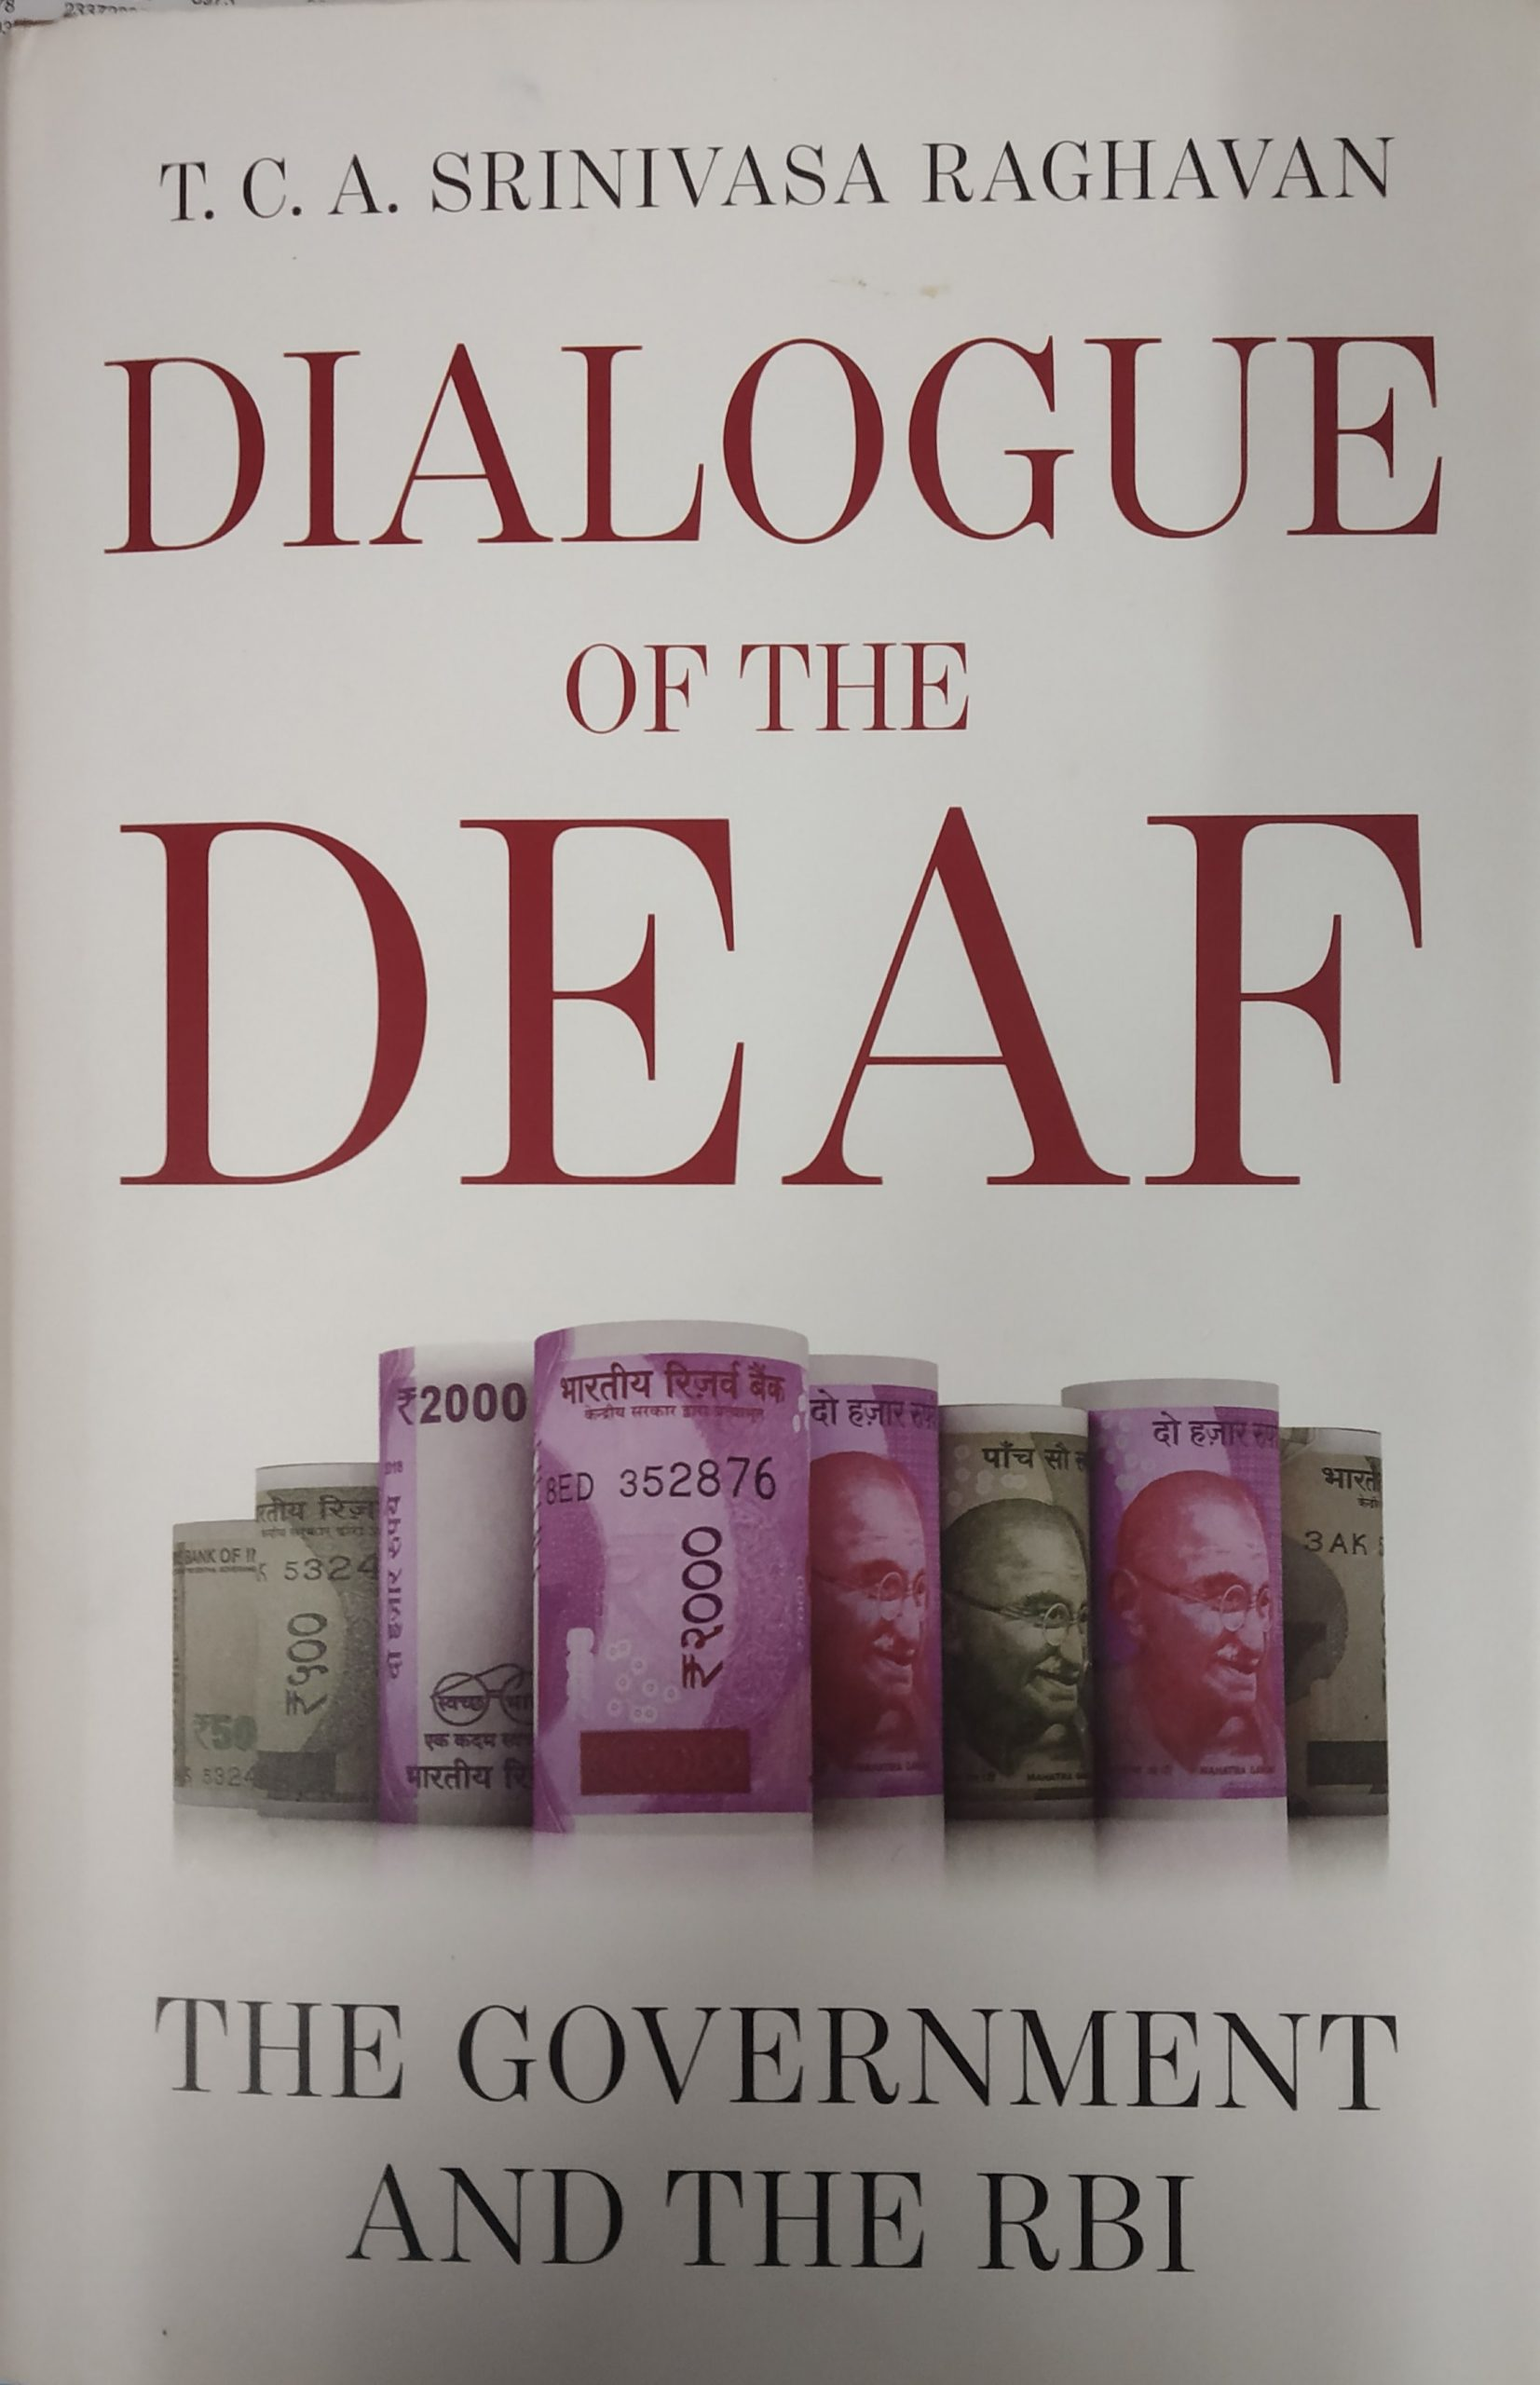 Dialogue of the Deaf